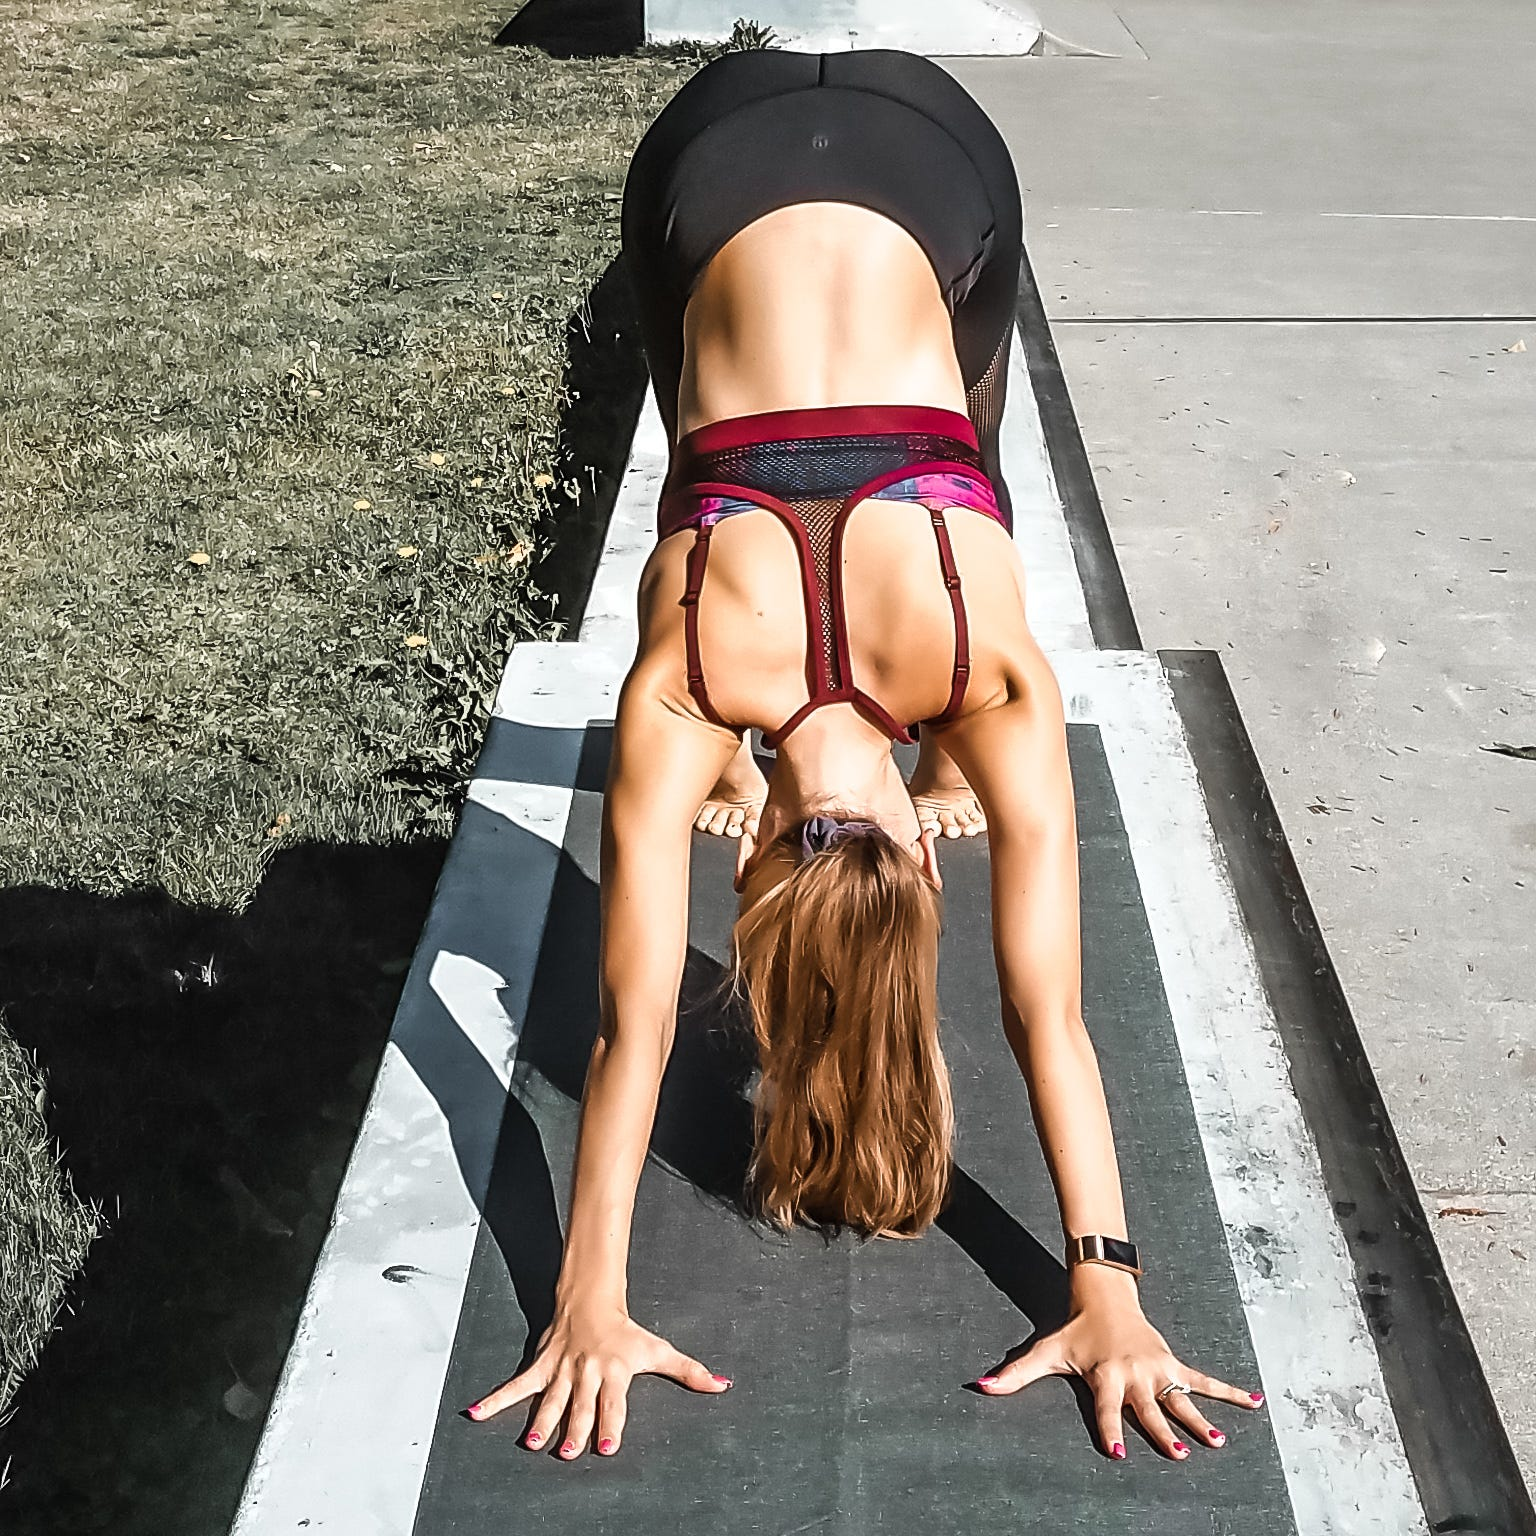 A woman in the Downward-Facing Dog Yoga pose.